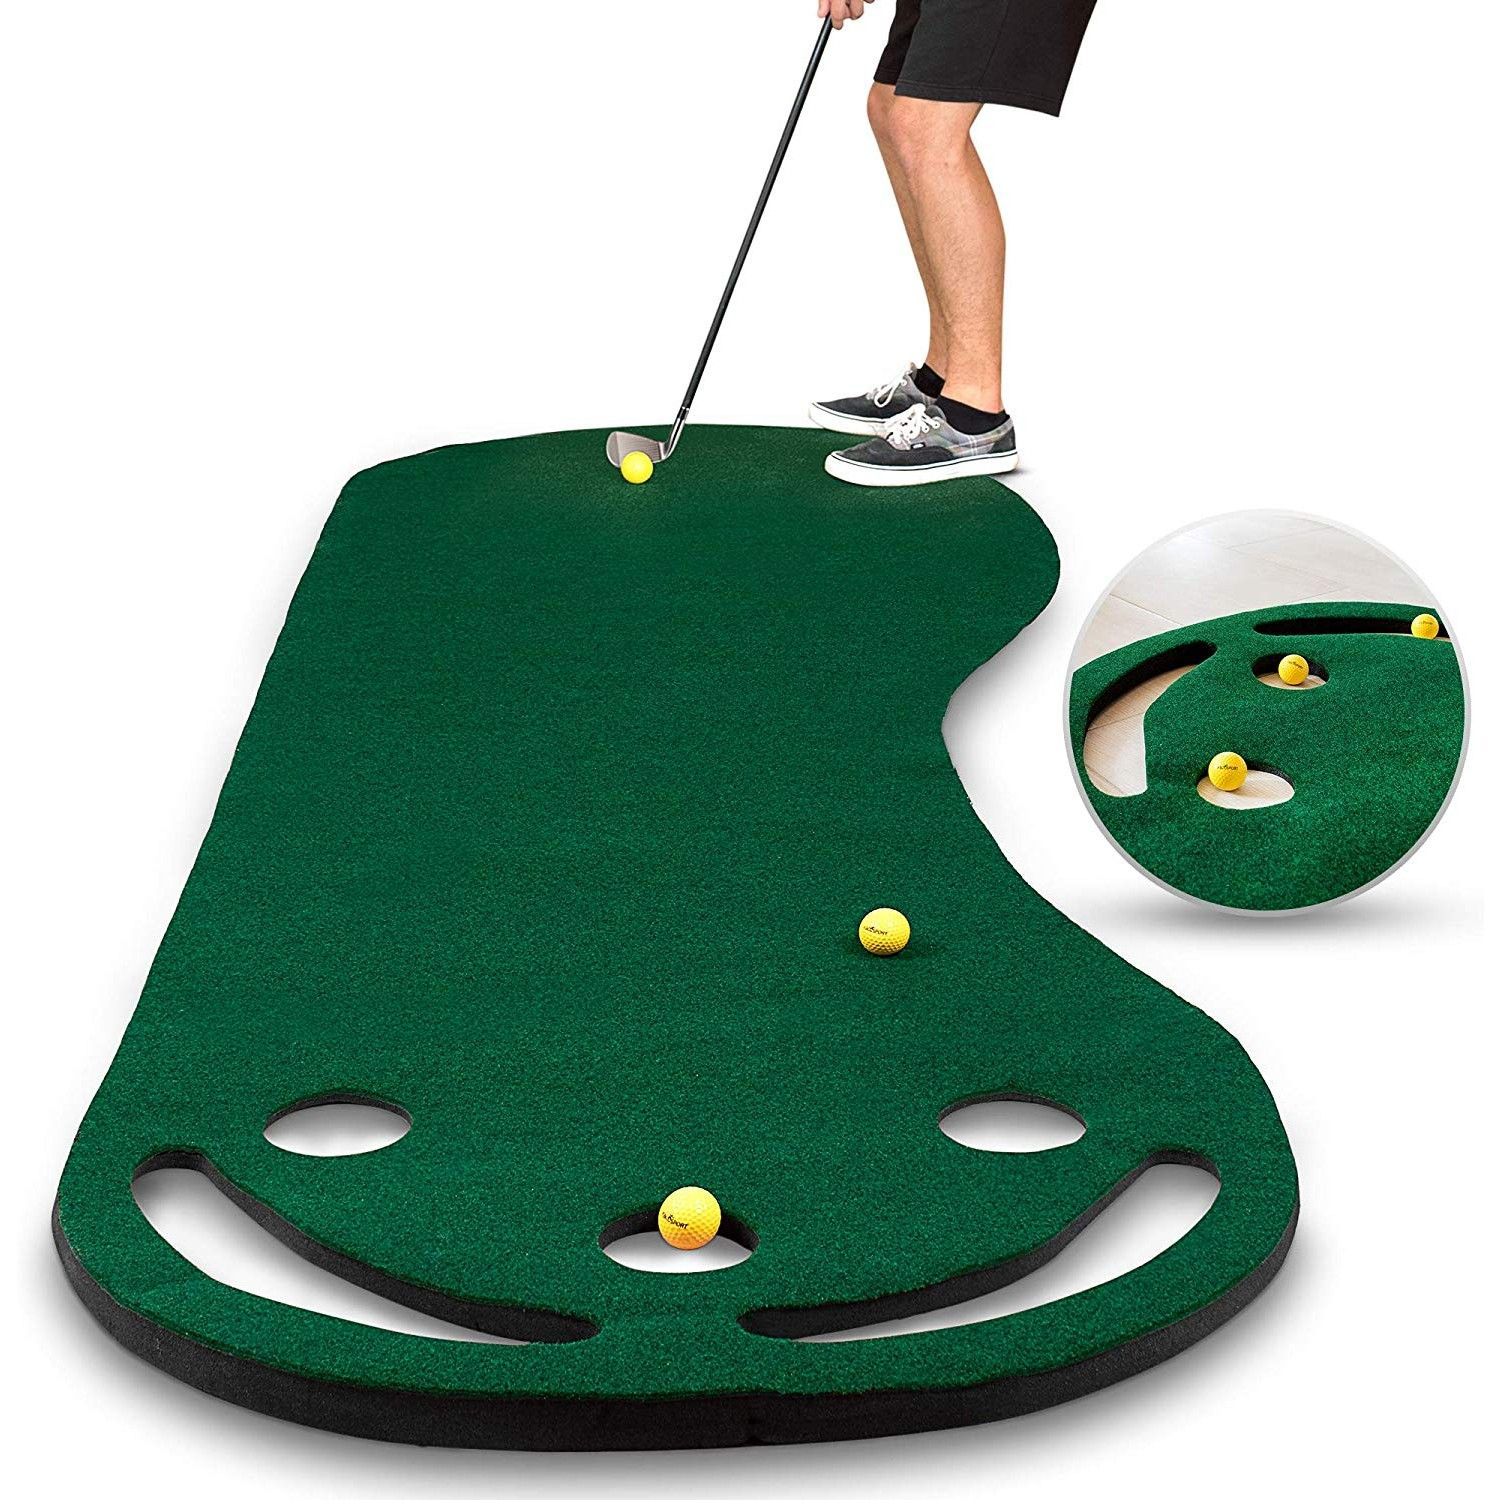 Mini Golf In 2020 Unique Gifts For Kids Outdoor Lover Gifts Affordable Christmas Gifts